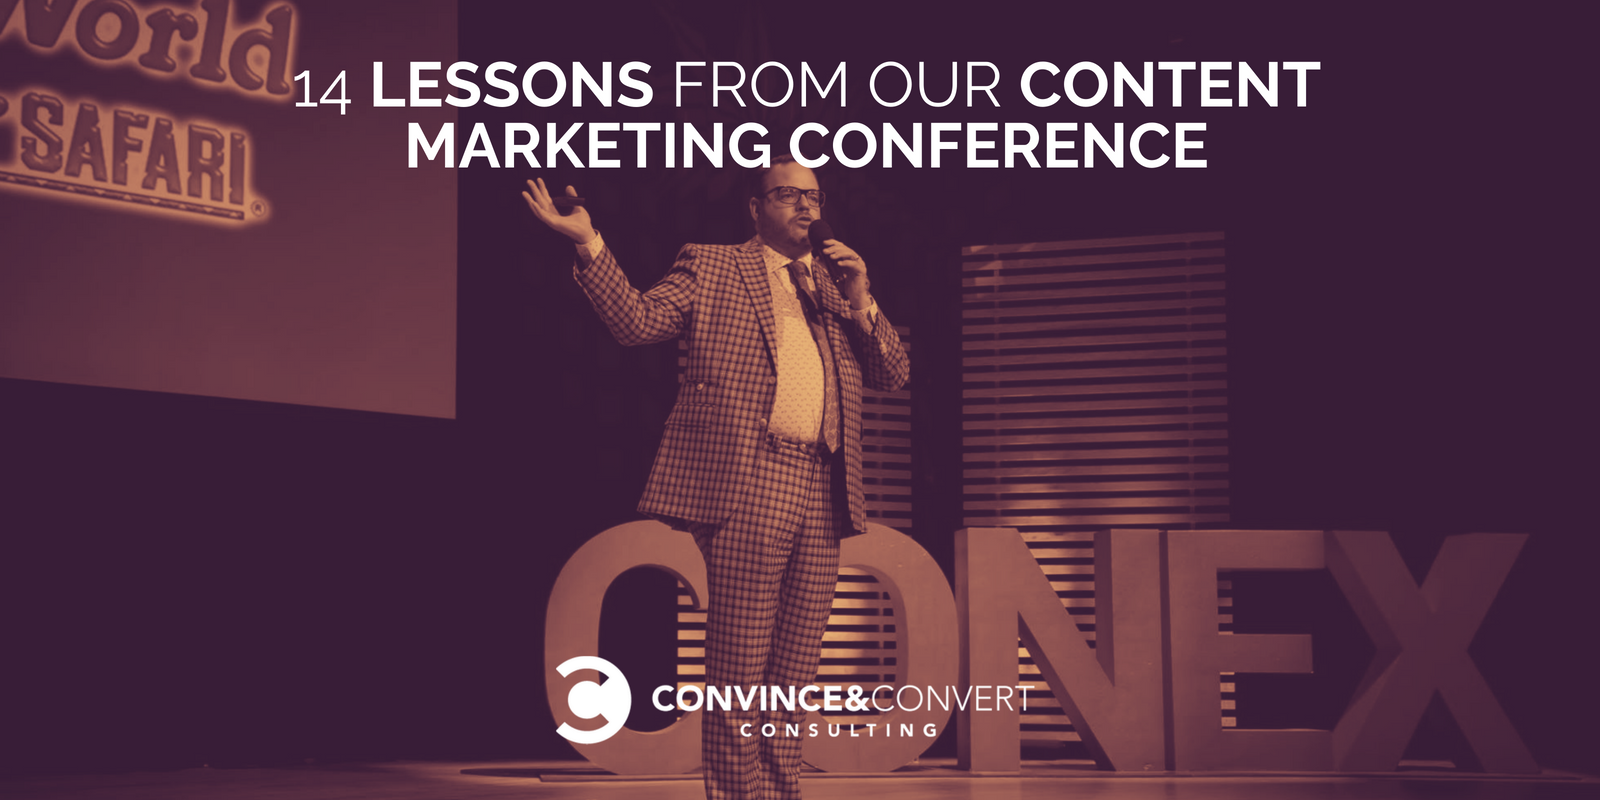 14 Lessons From Our Content Marketing Conference